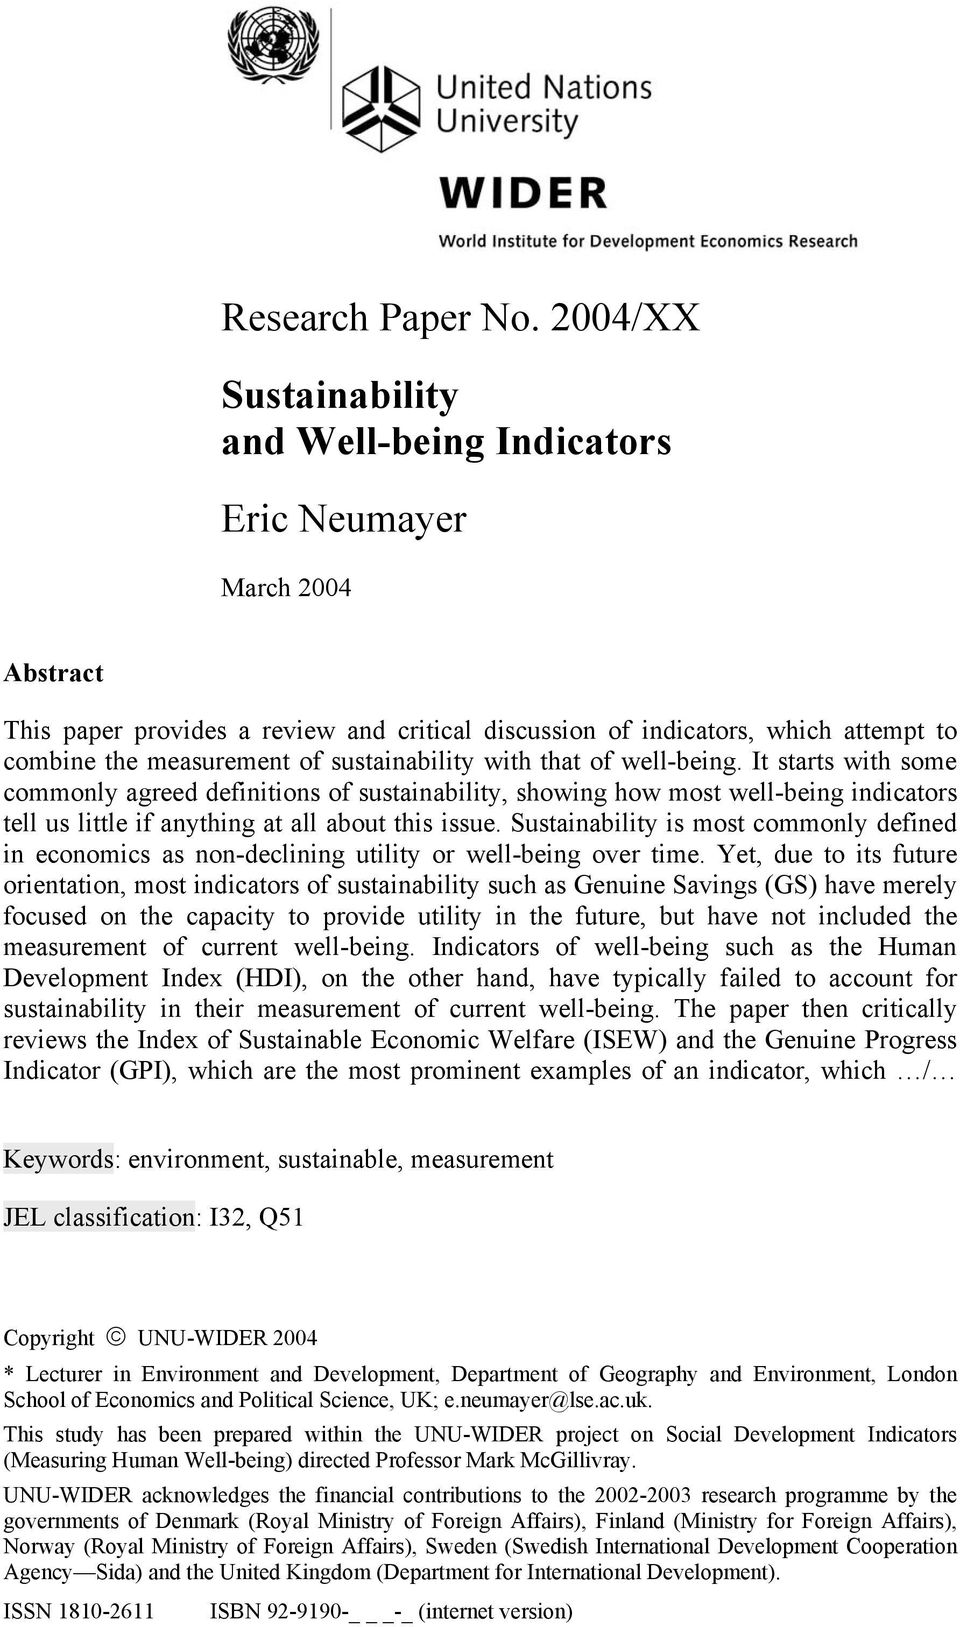 sustainability with that of well-being. It starts with some commonly agreed definitions of sustainability, showing how most well-being indicators tell us little if anything at all about this issue.